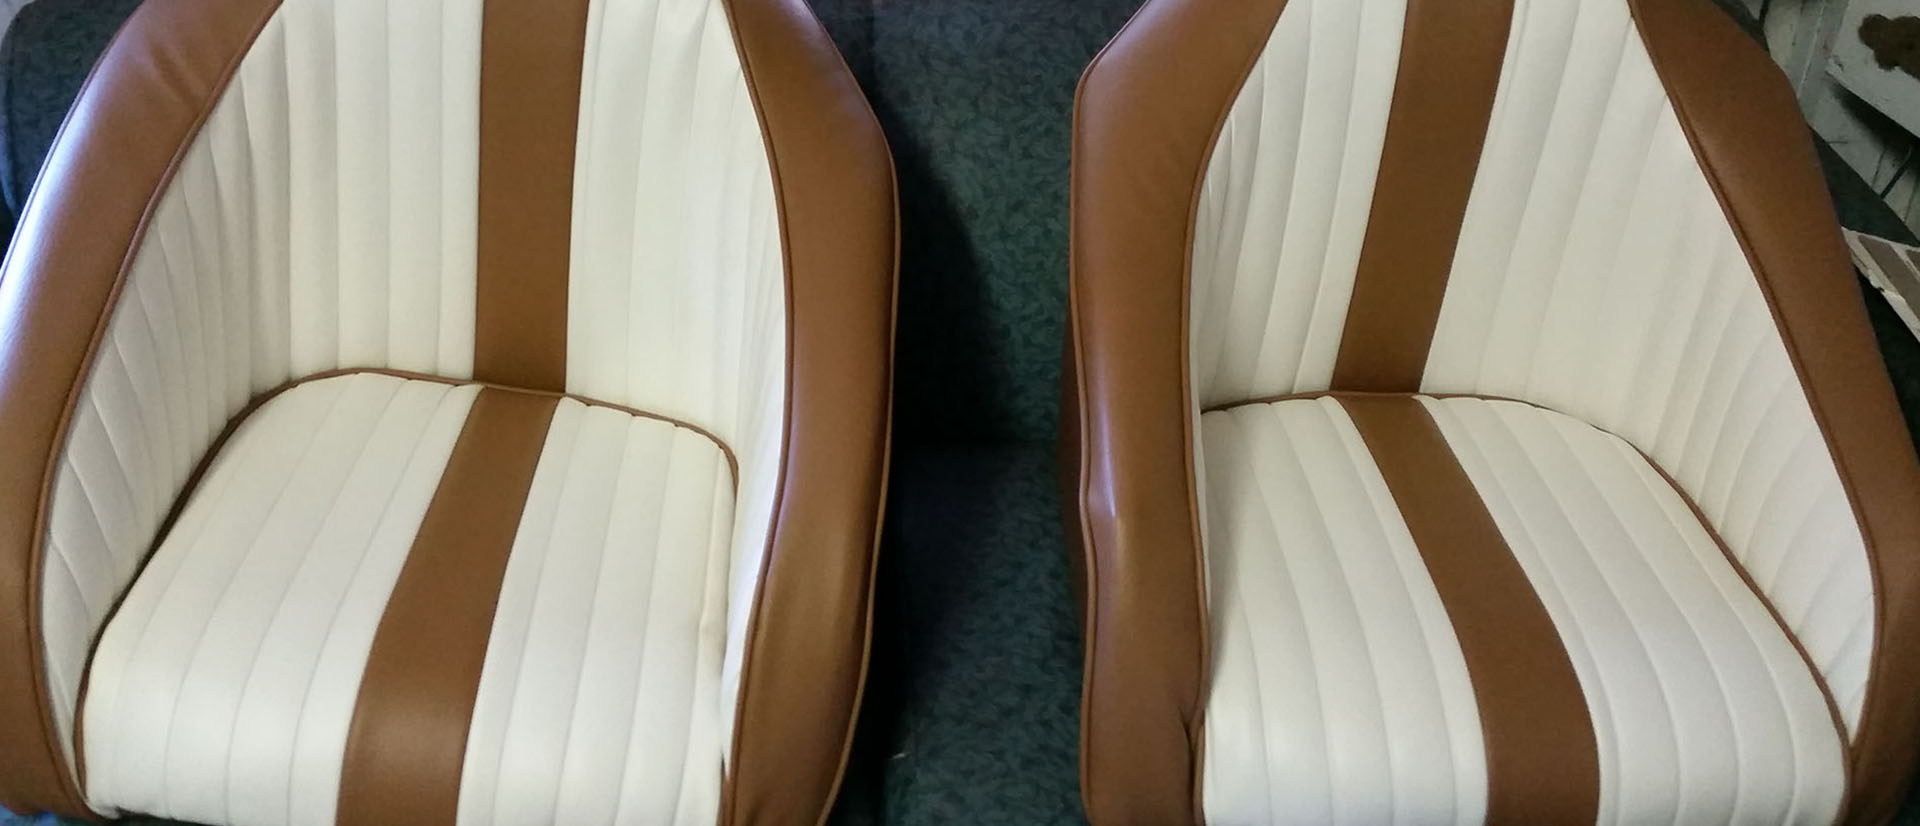 Home | Tampa Upholstery, Headliners and Convertible Tops